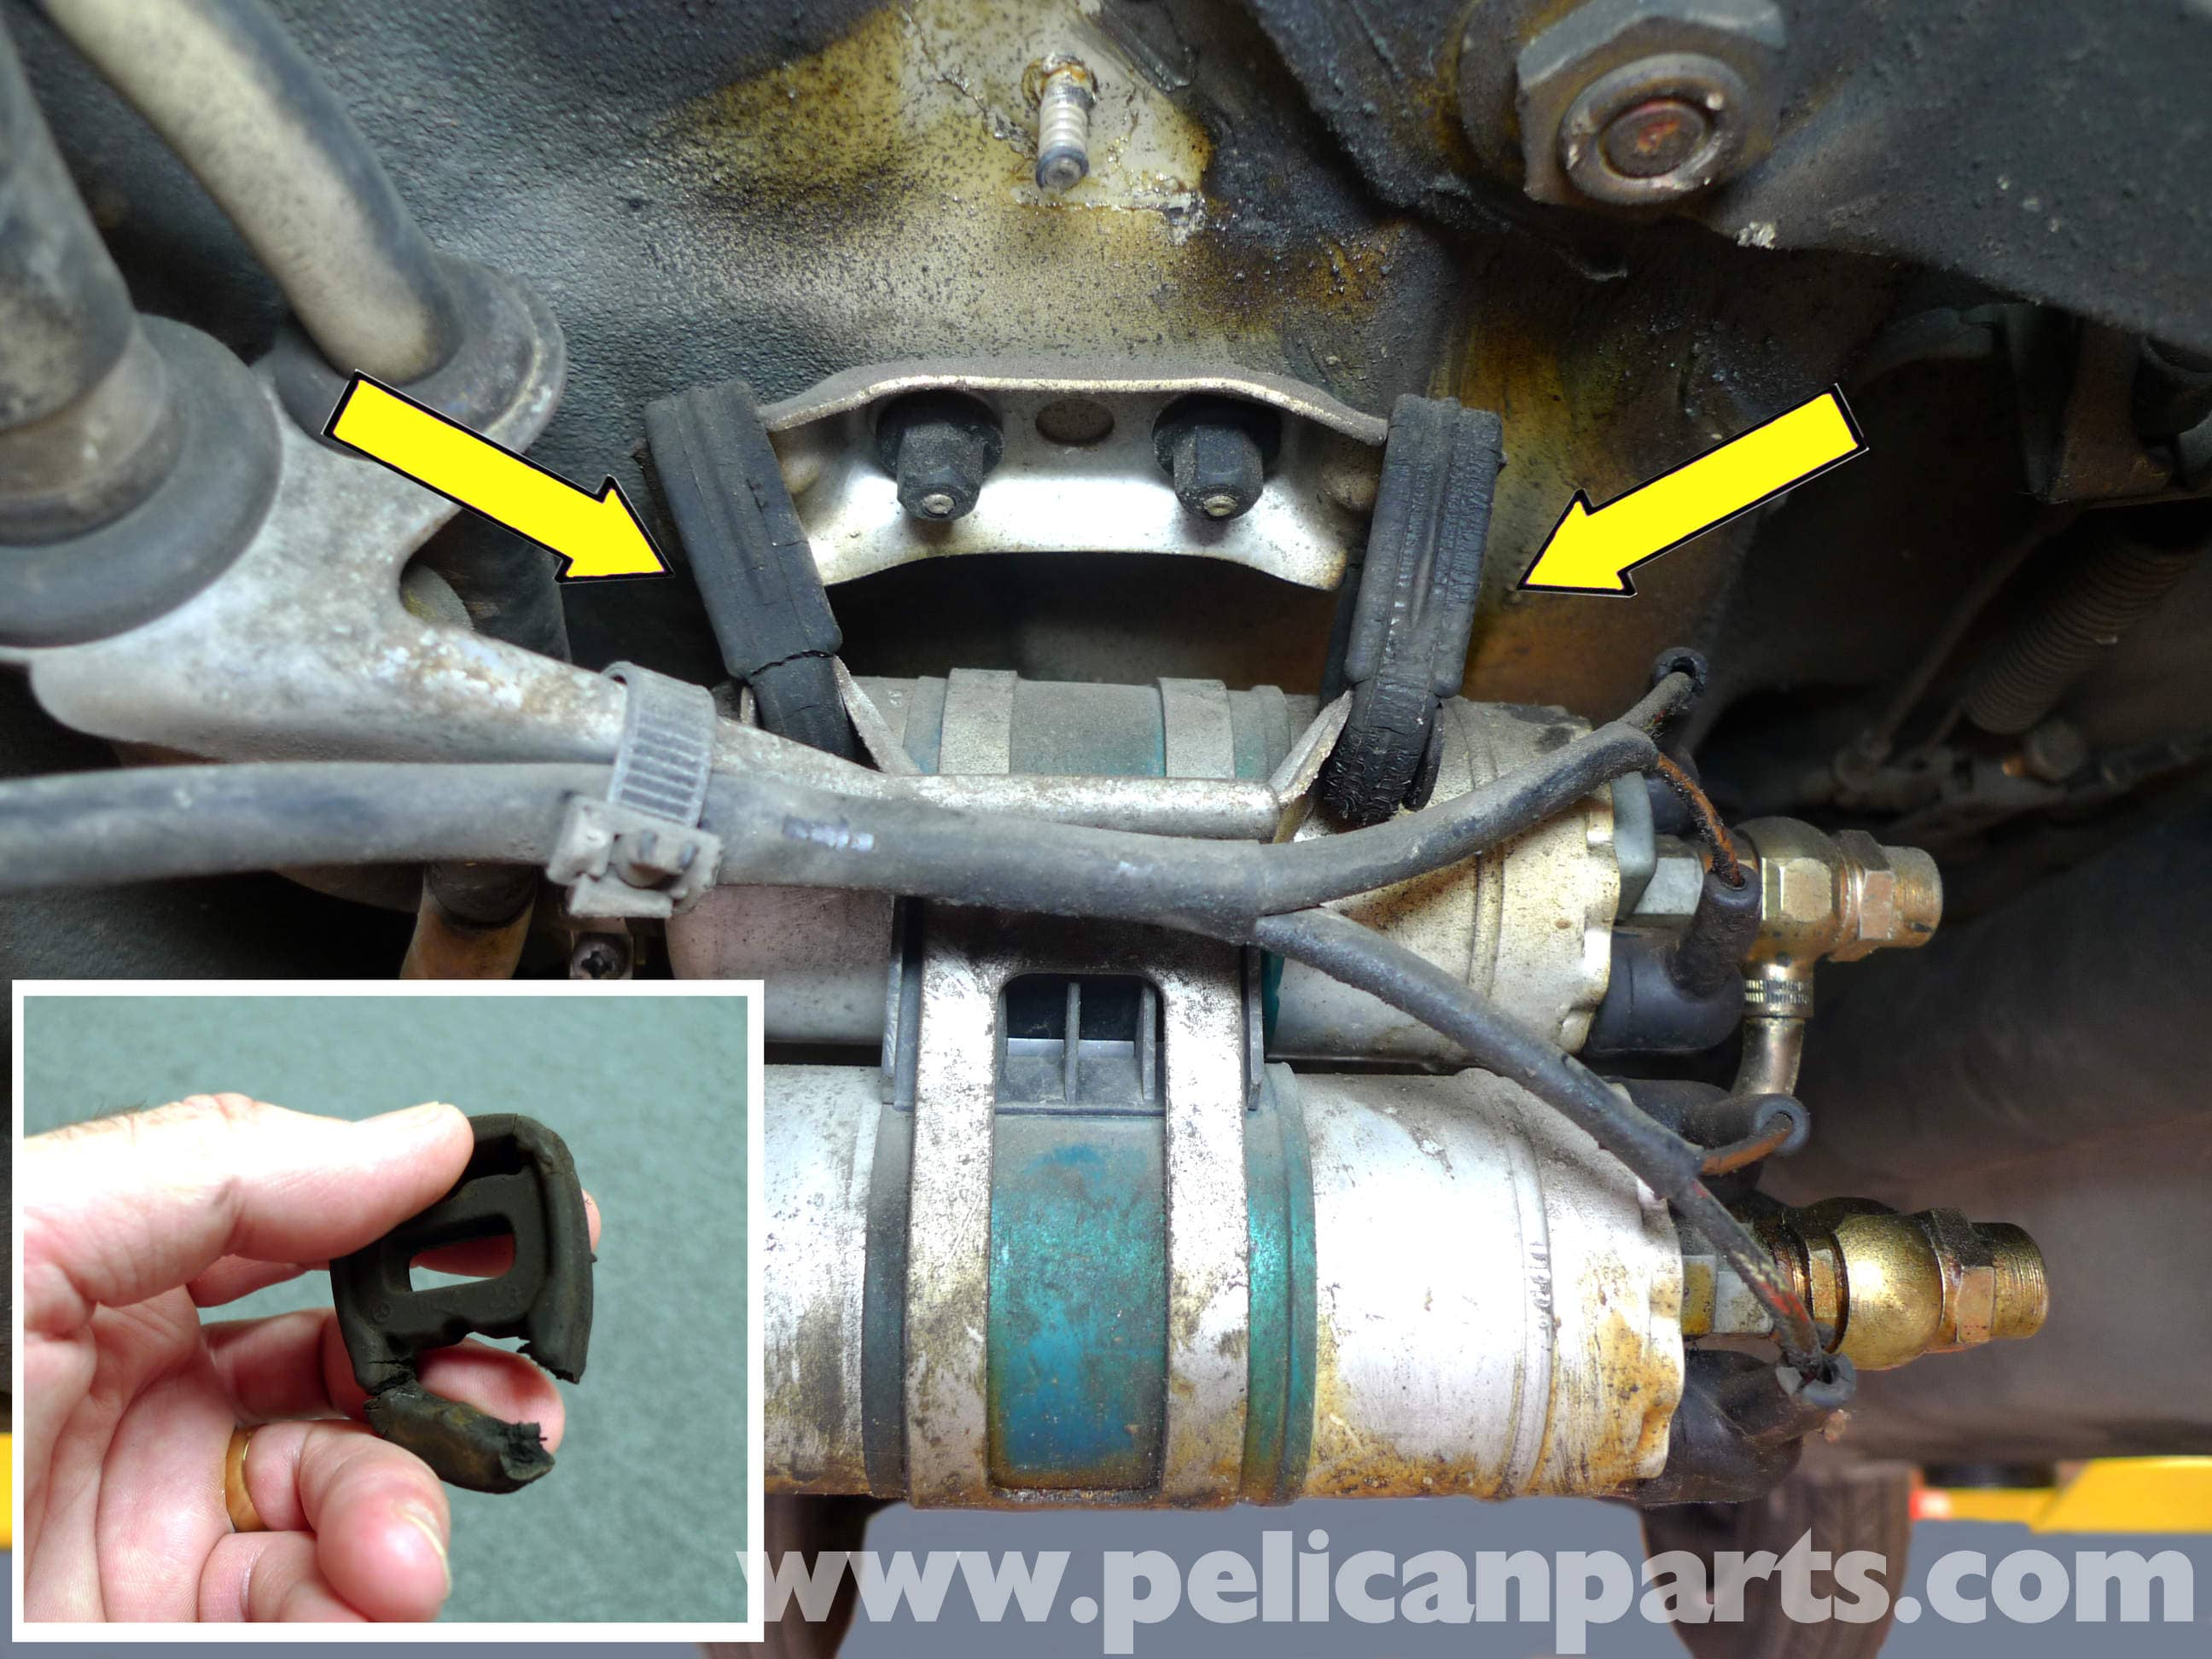 Mercedes Benz 190e Fuel Filter Replacement W201 1987 1993 Club Car Pump Problems Large Image Extra